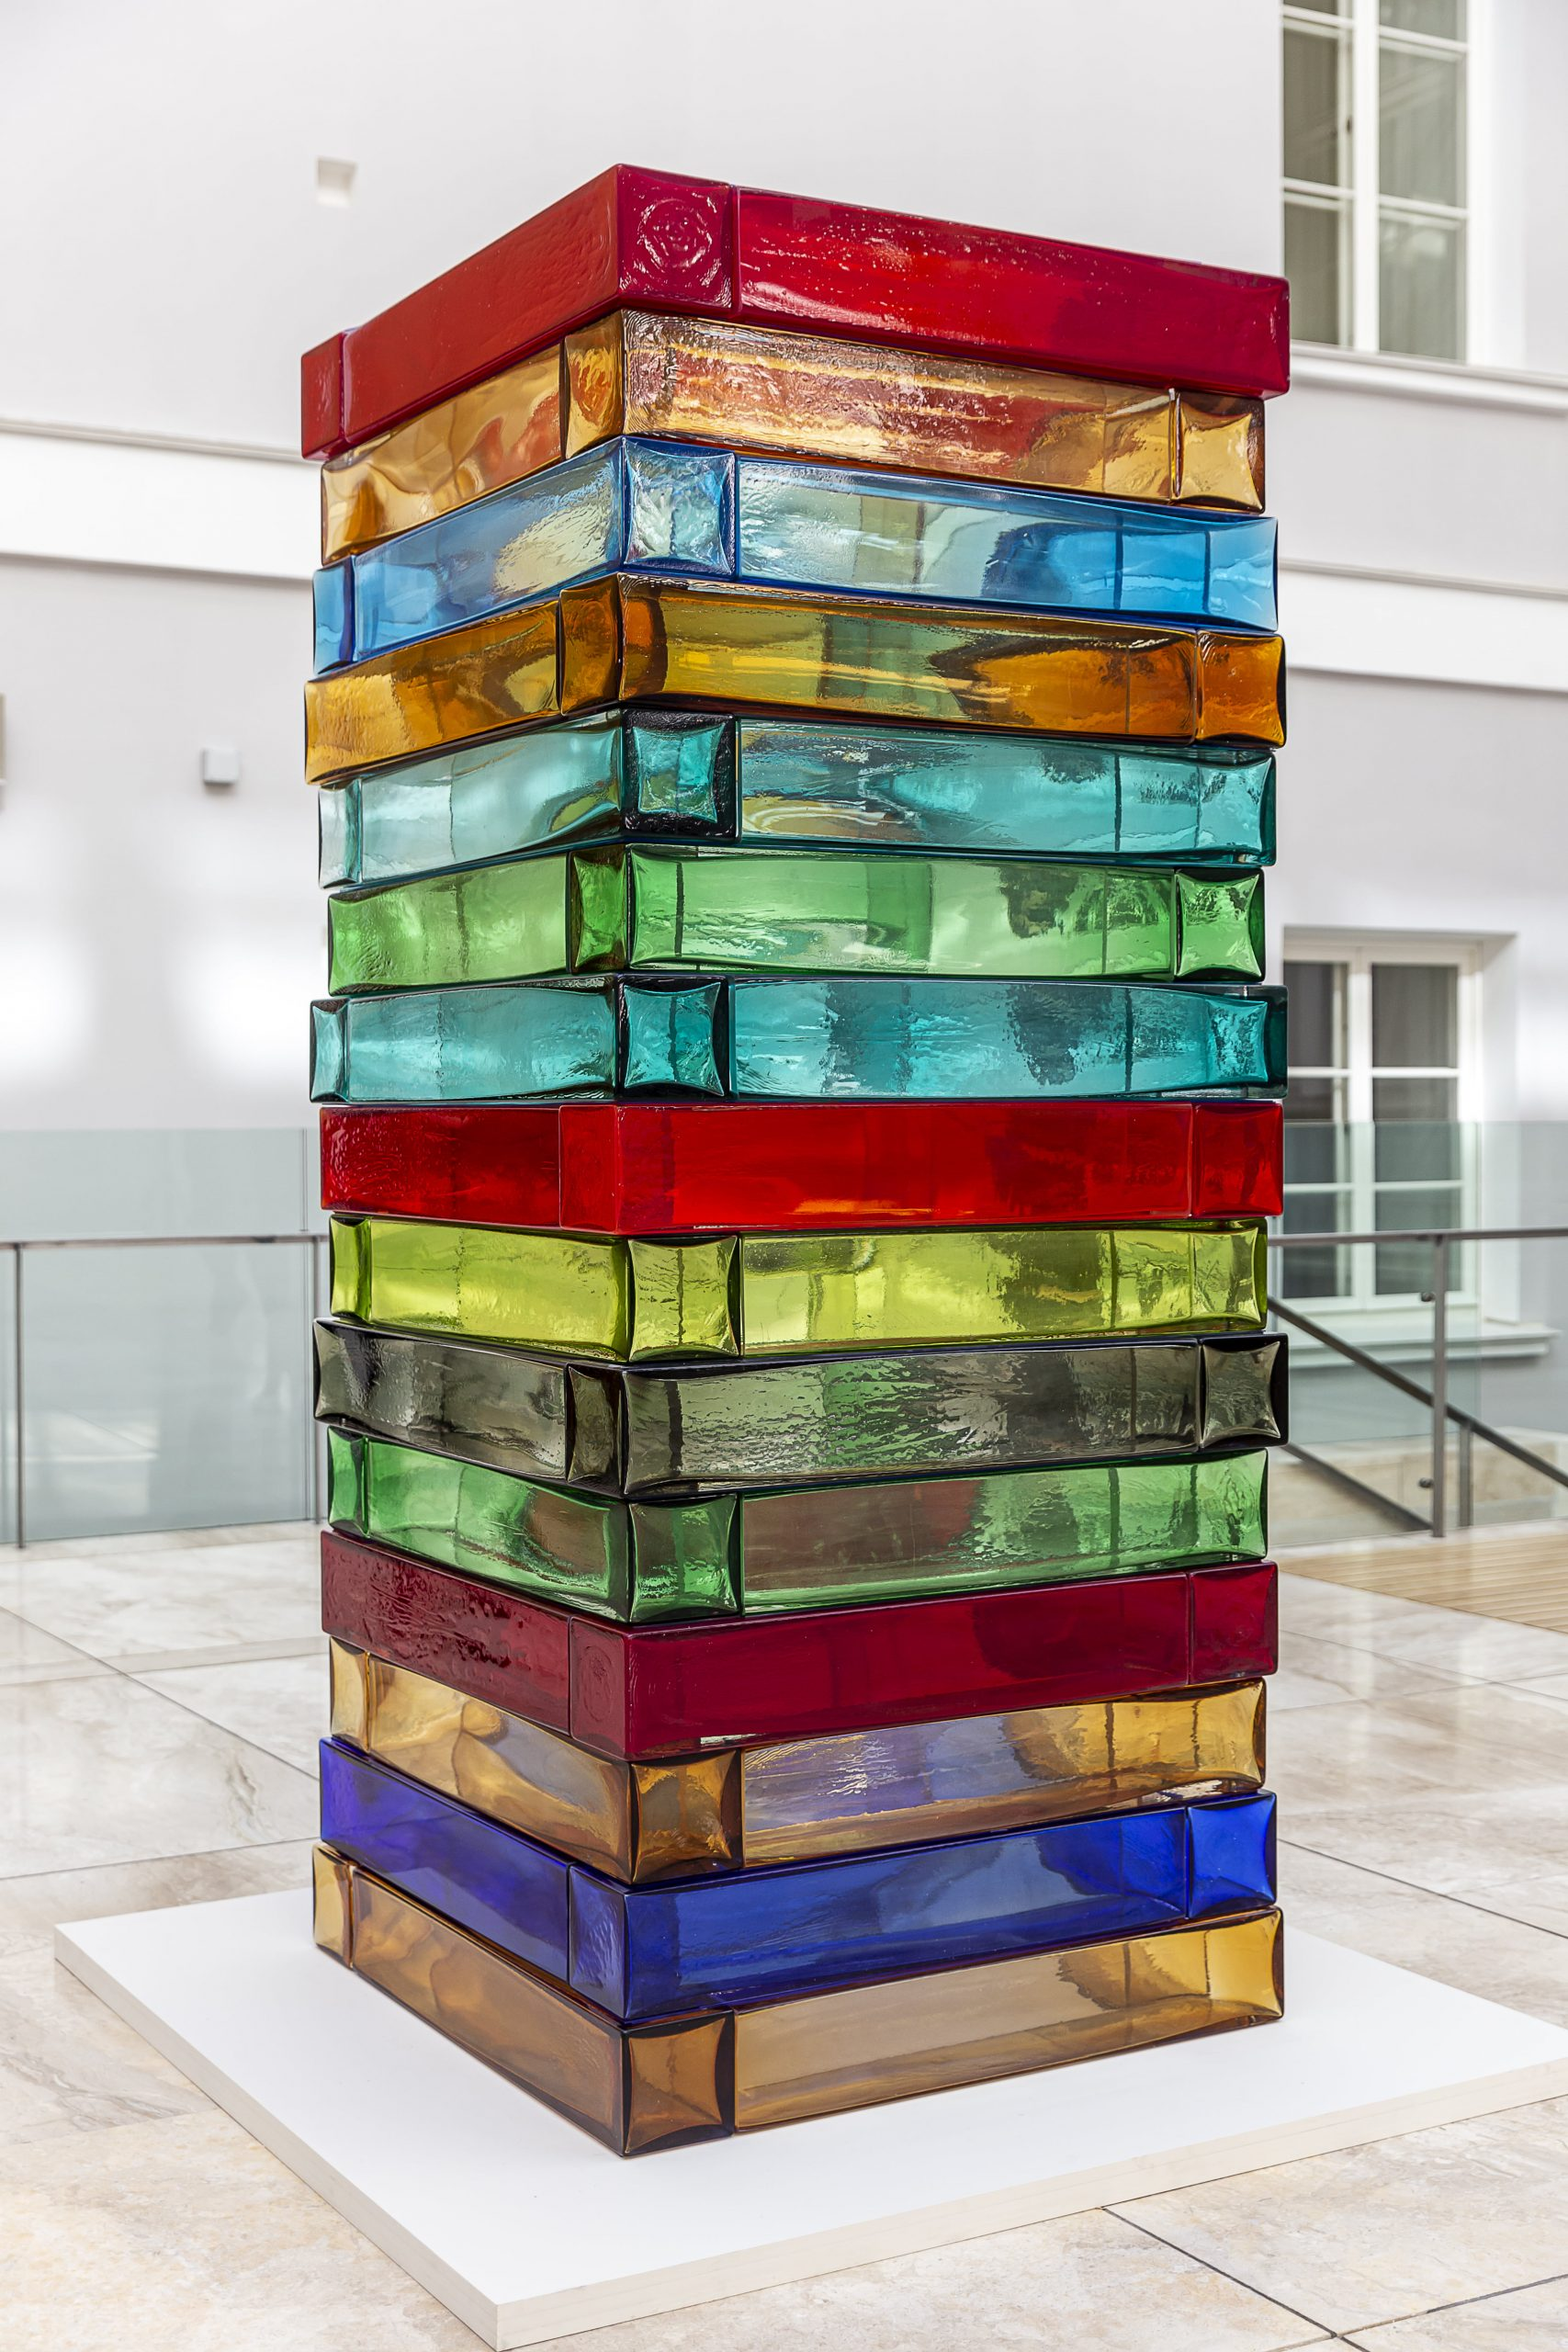 ean Scully's Venice Stack